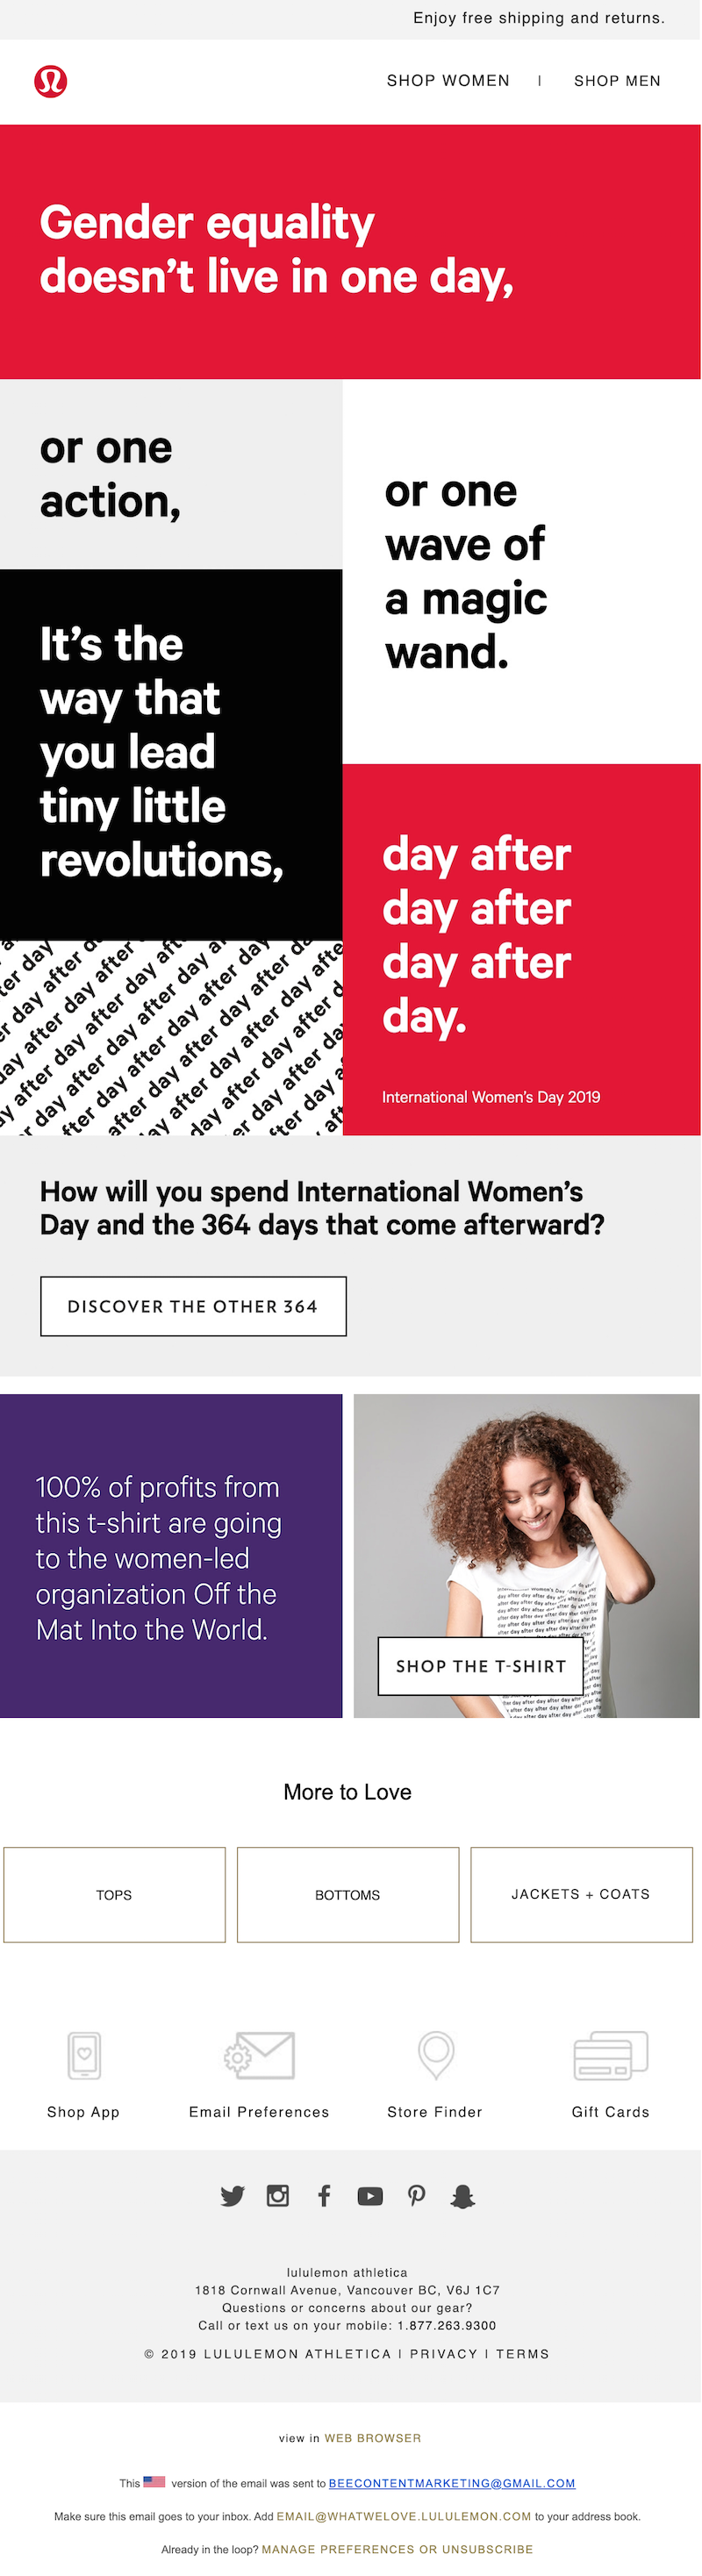 international women's day email template